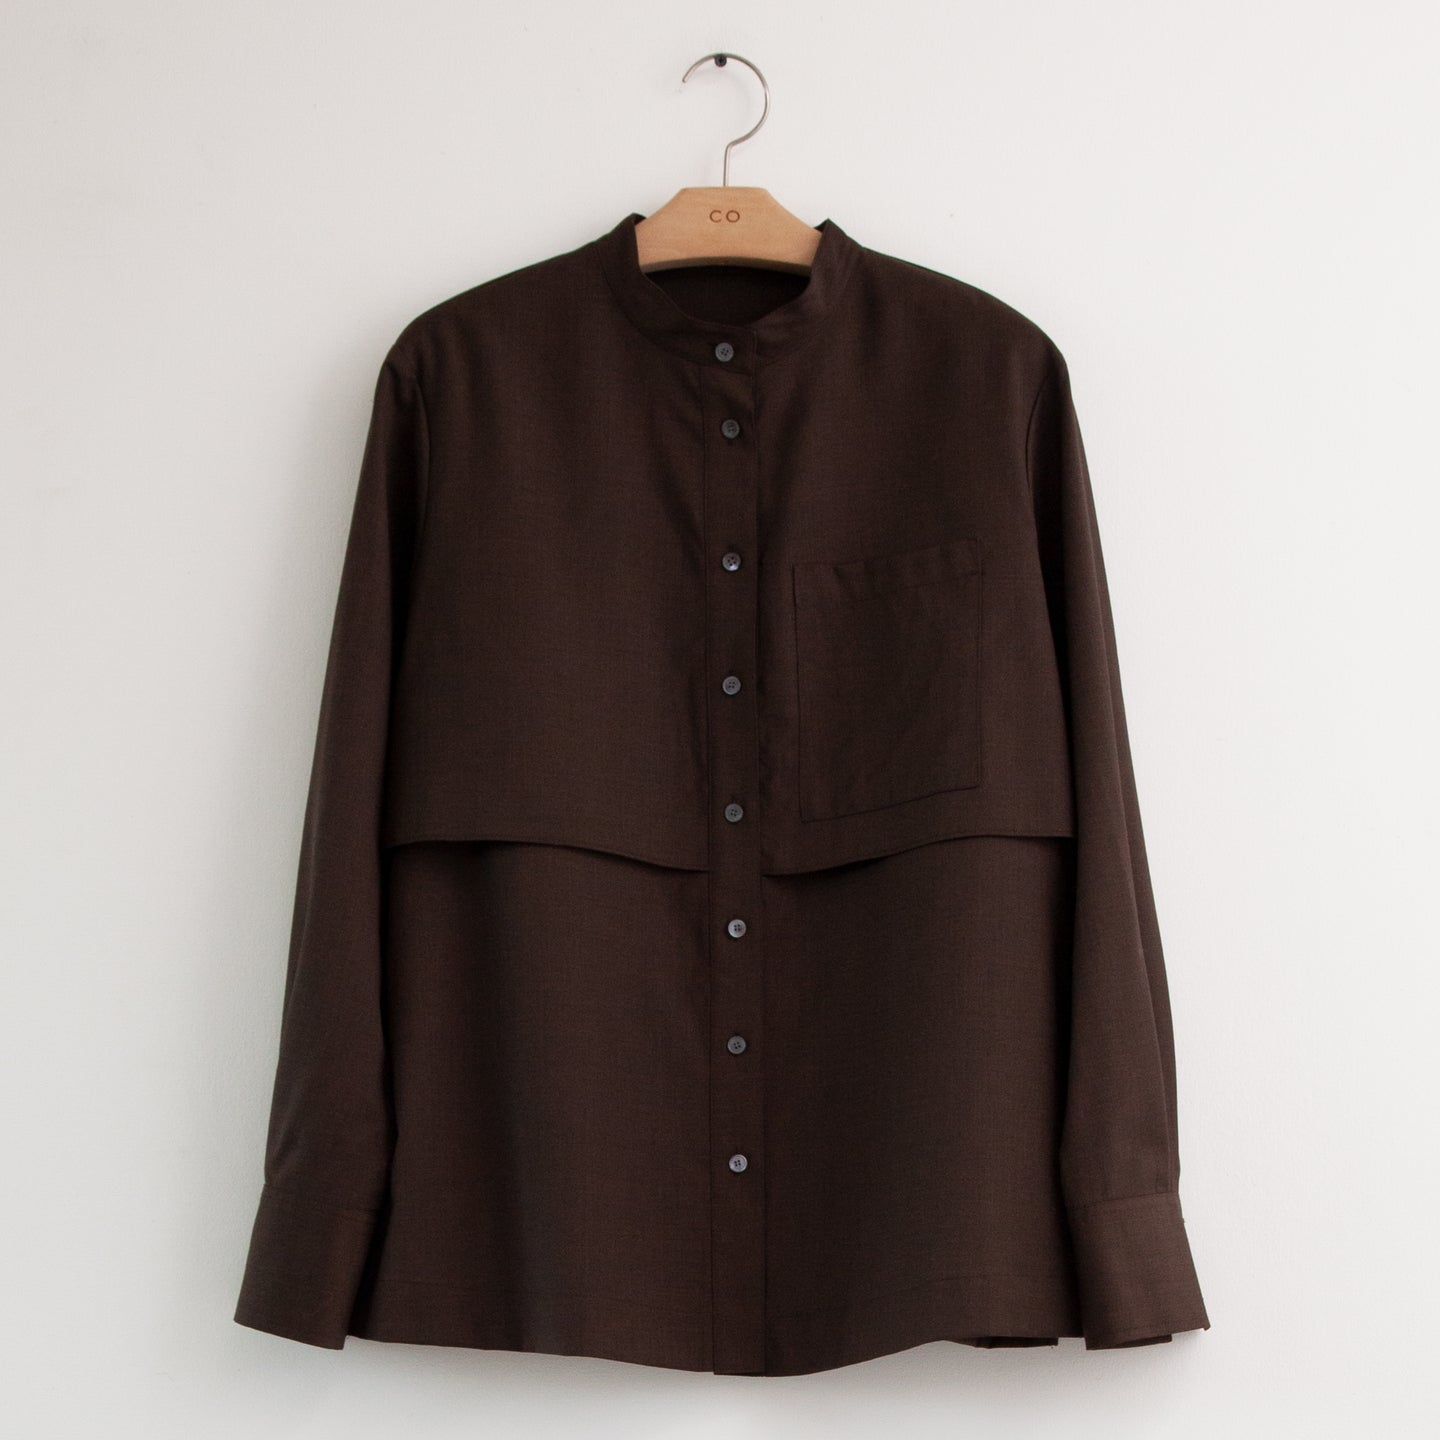 CO - Long sleeve button up blouse in espresso